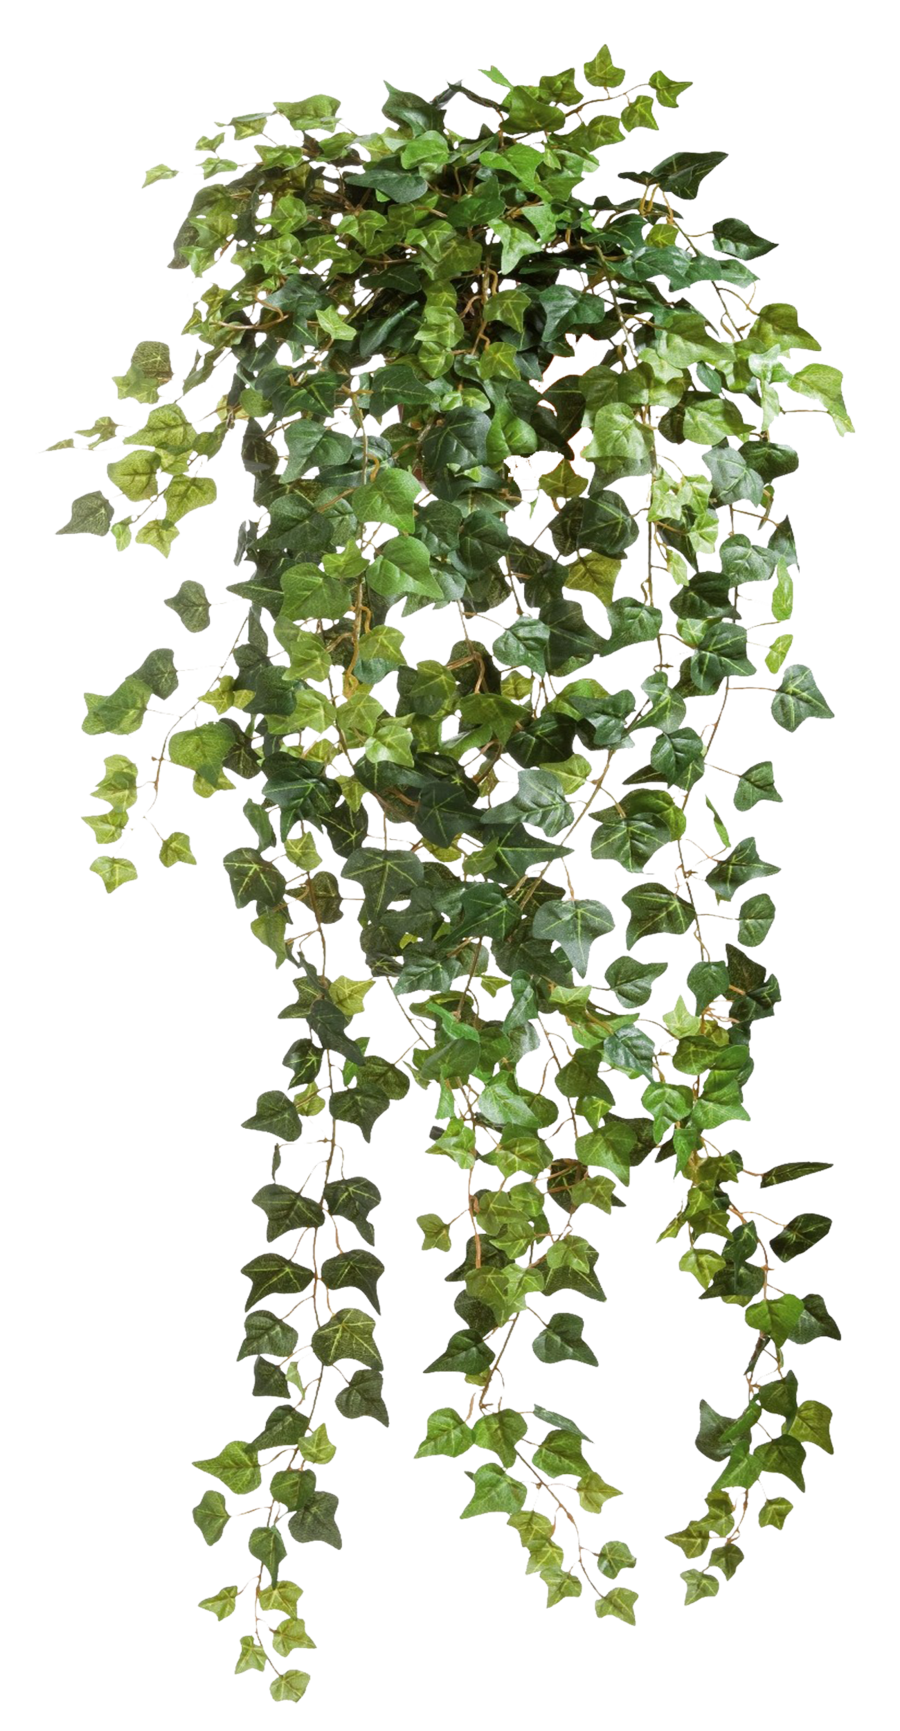 Ivy vine png. Vines transparent pictures free